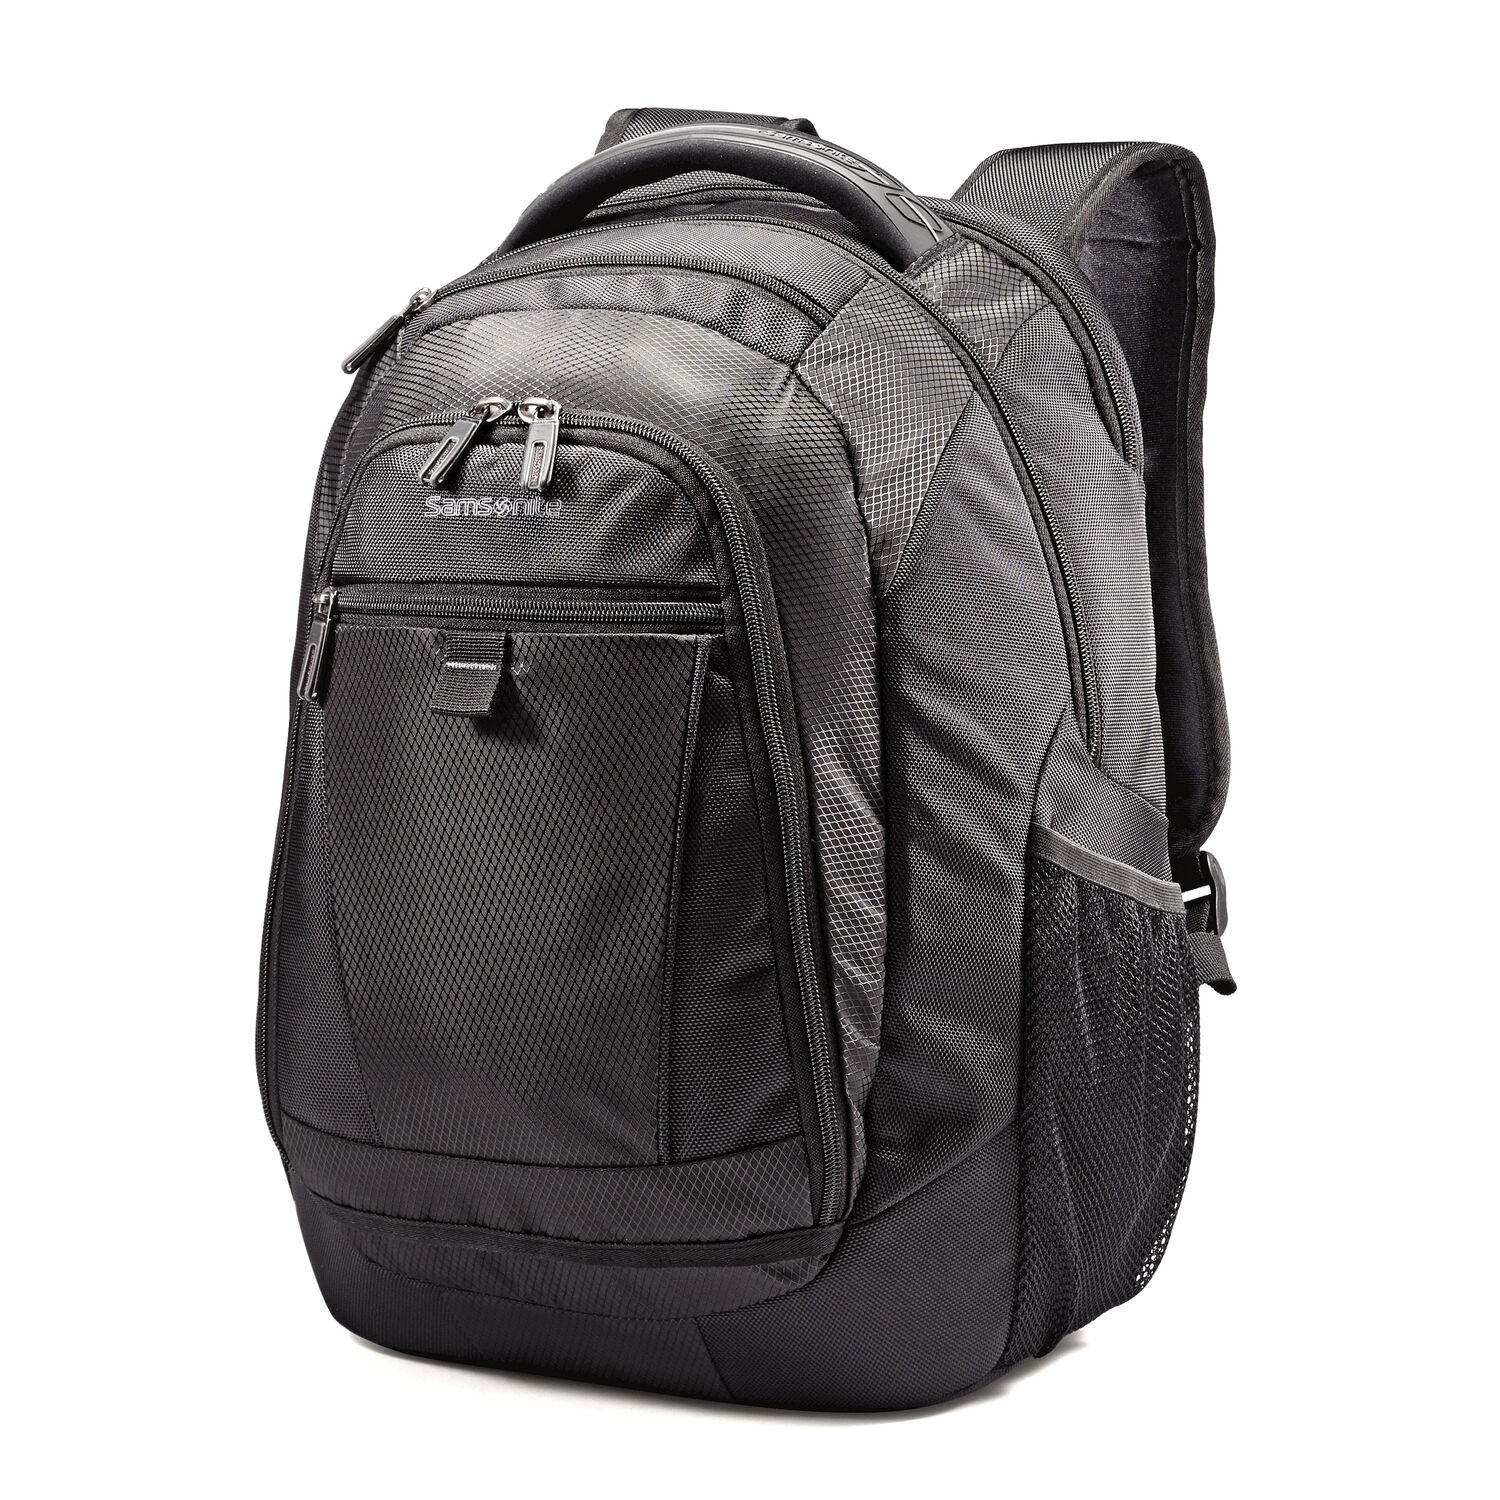 954fe84f6c61 Samsonite Tectonic 2 Medium Backpack in the color Black.